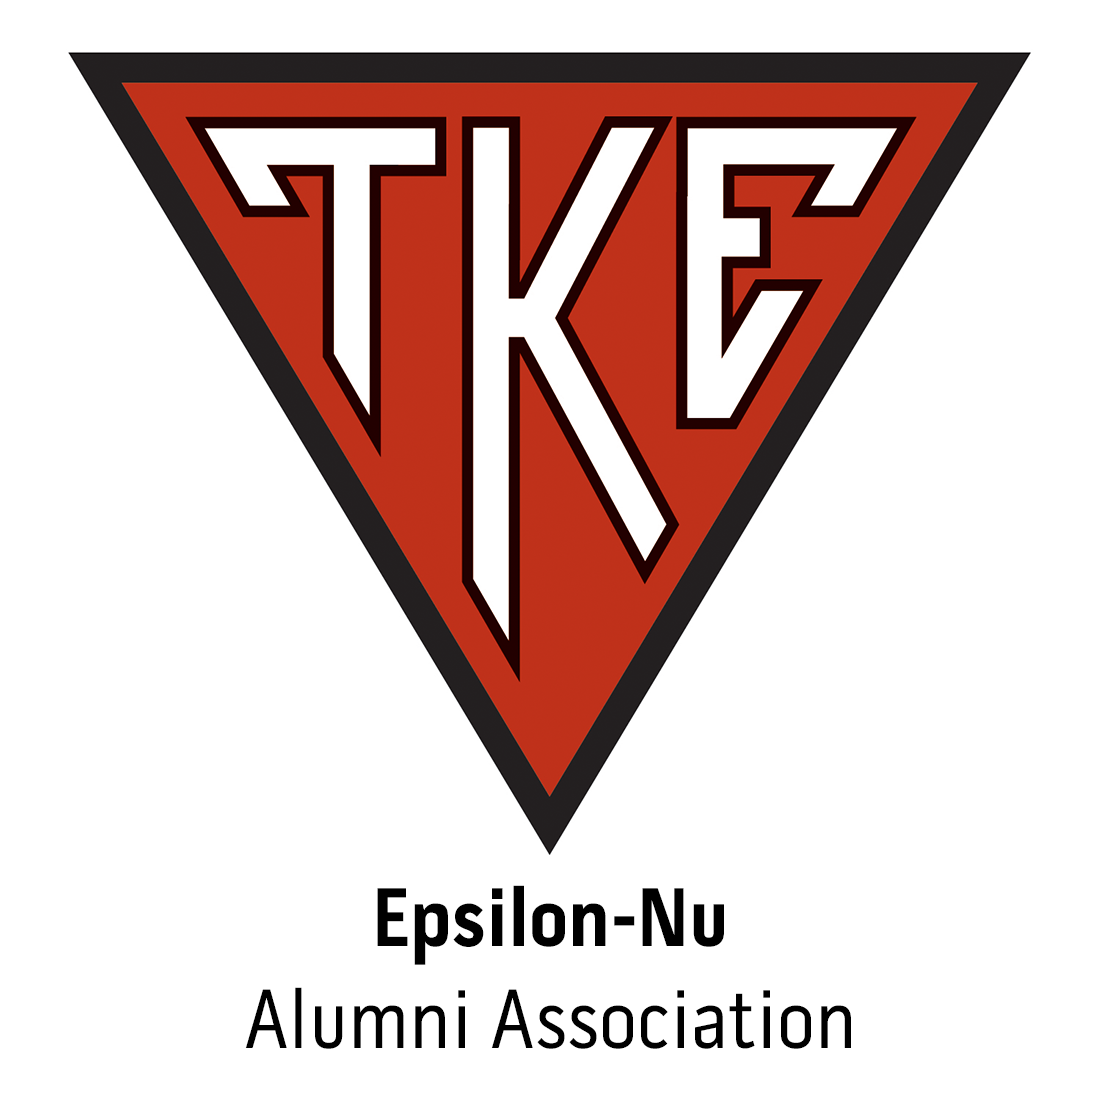 Epsilon-Nu Alumni Association Alumni at Univ of Wisconsin-Stevens Point